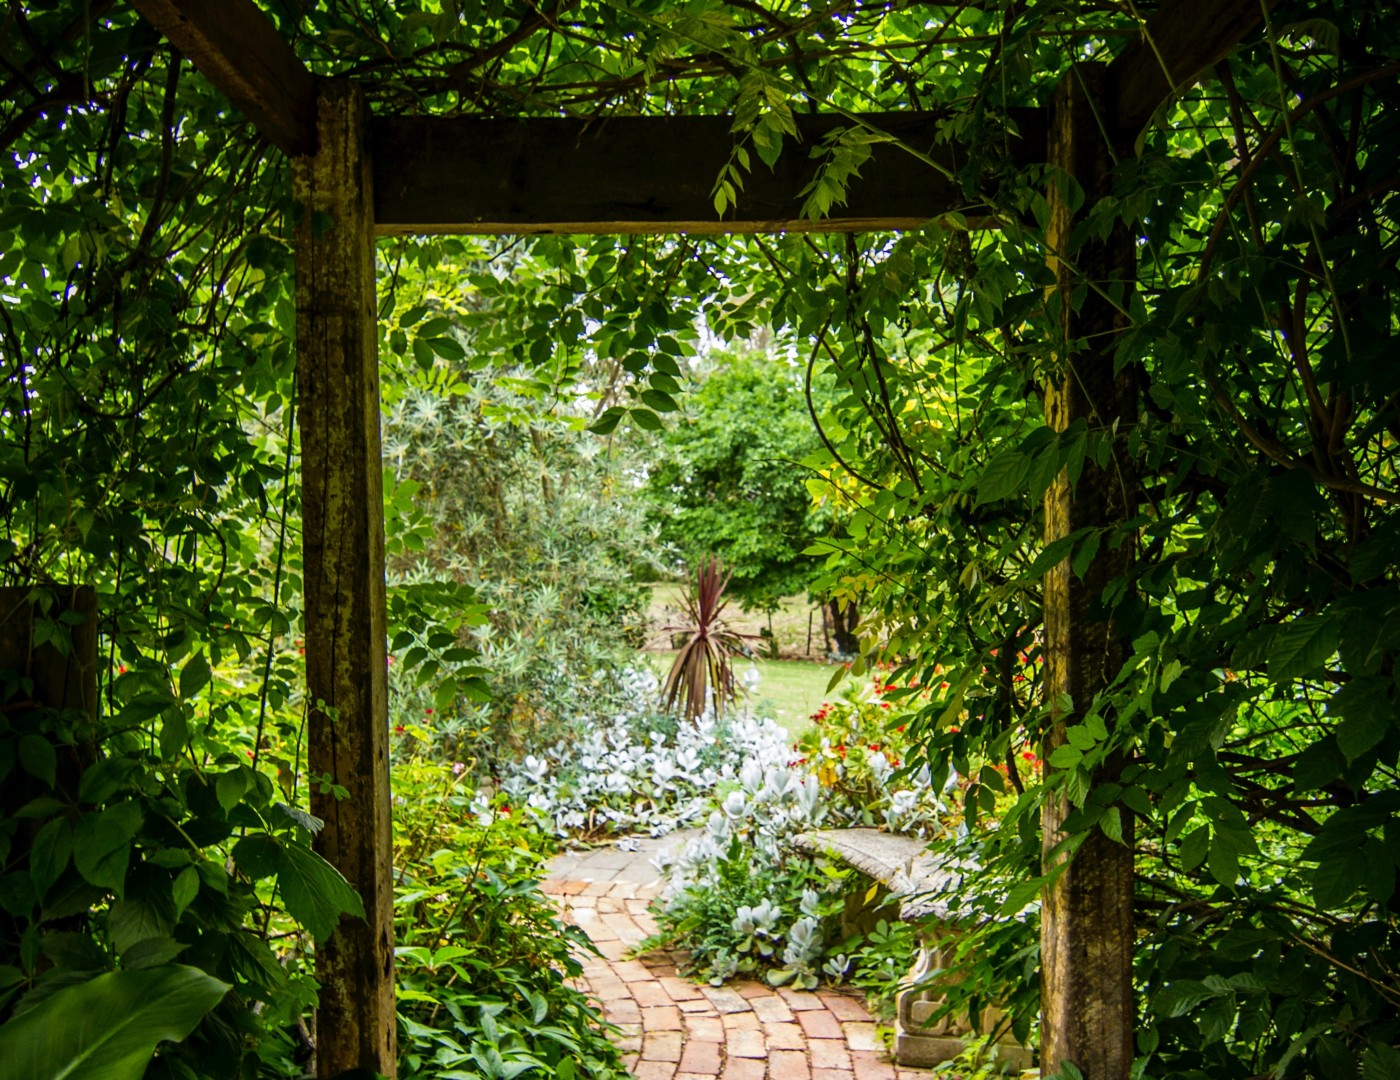 Garden path with green plants